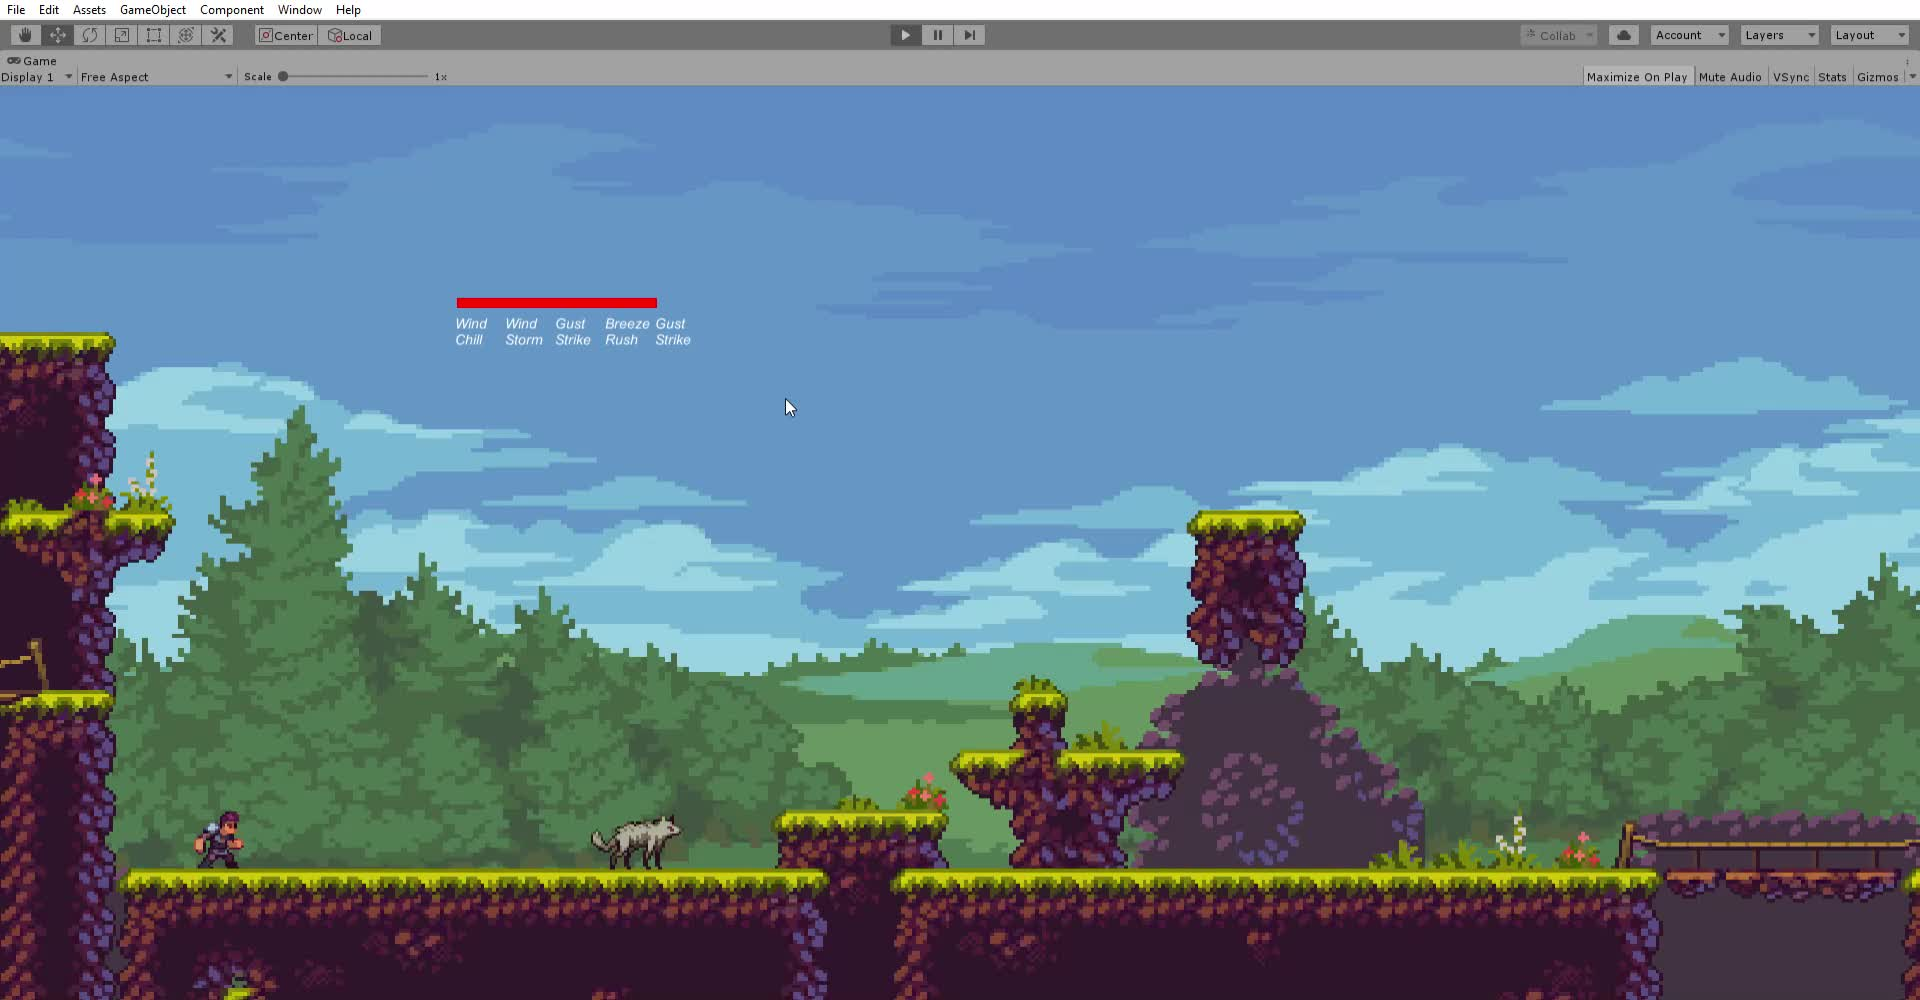 rivalsofaether, TestProject - Development Scene - PC, Mac & Linux Standalone - Unity 2019.3.0a3 Personal DX11  2019-07-13 14-53-15 GIFs